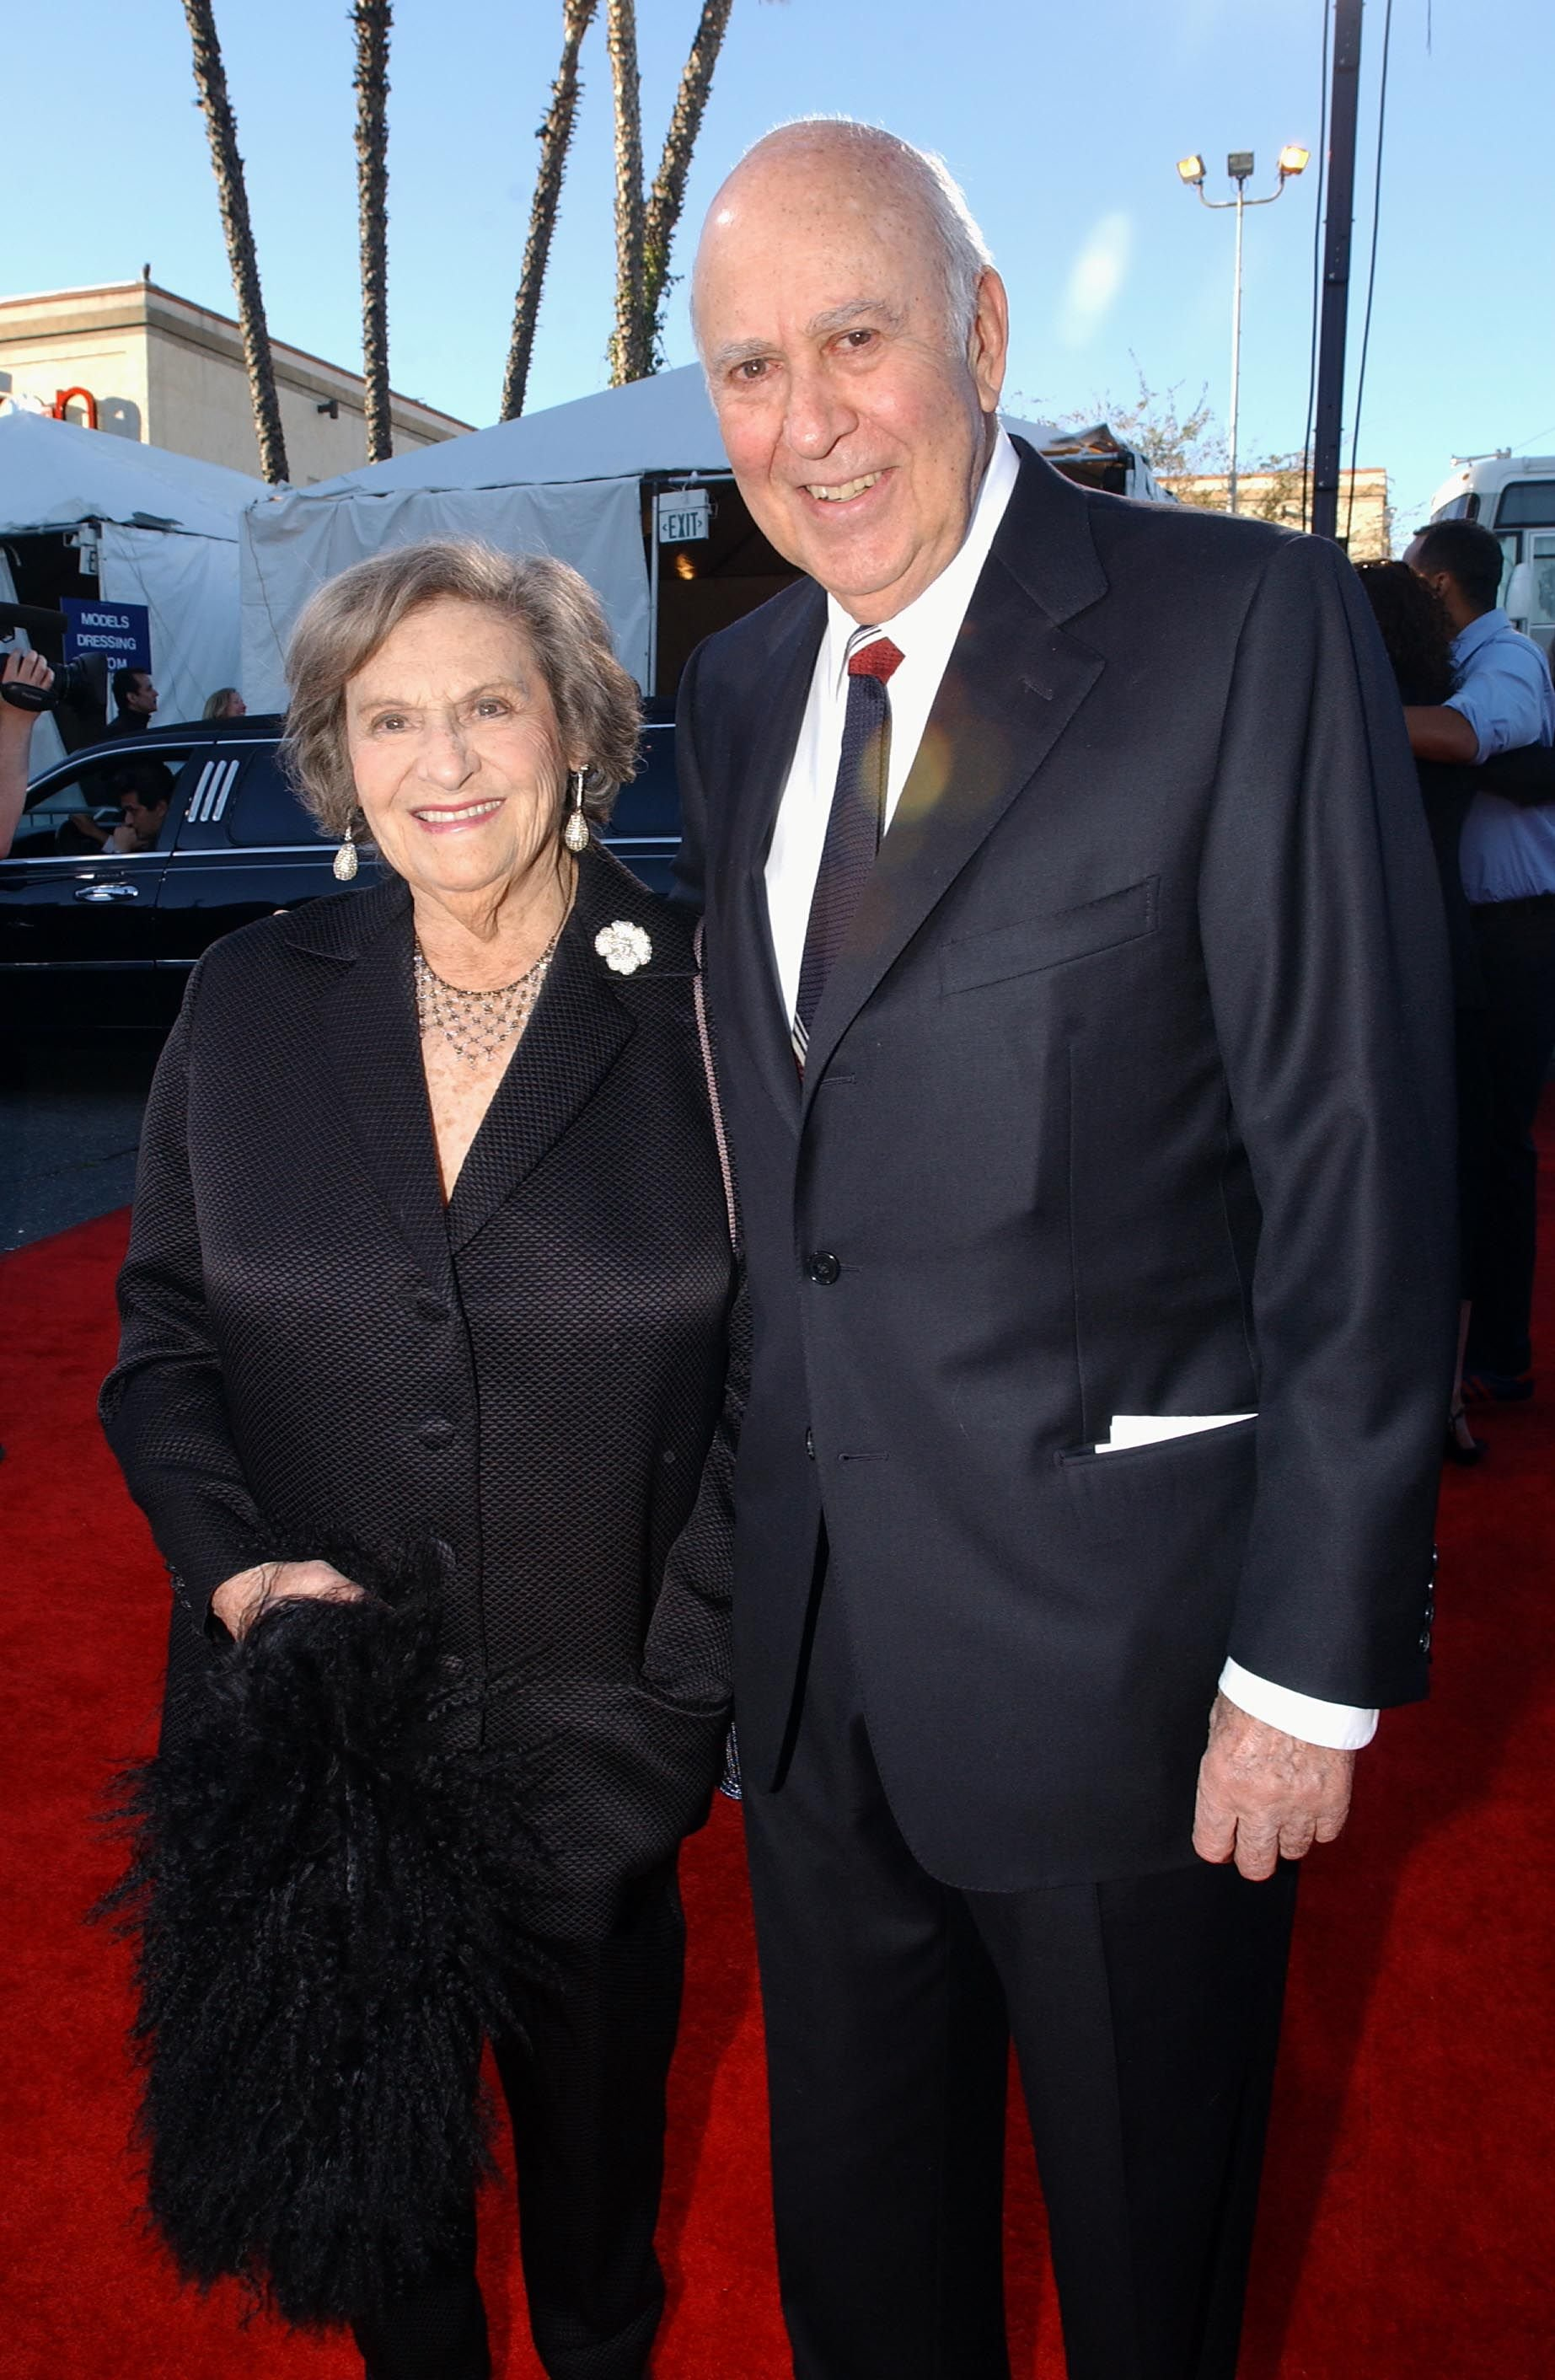 Late Carl Reiner and wife Estelle at the TV Land Awards 2003 at the Hollywood Palladium on March 2, 2003 in Hollywood, California | Photo: Getty Images